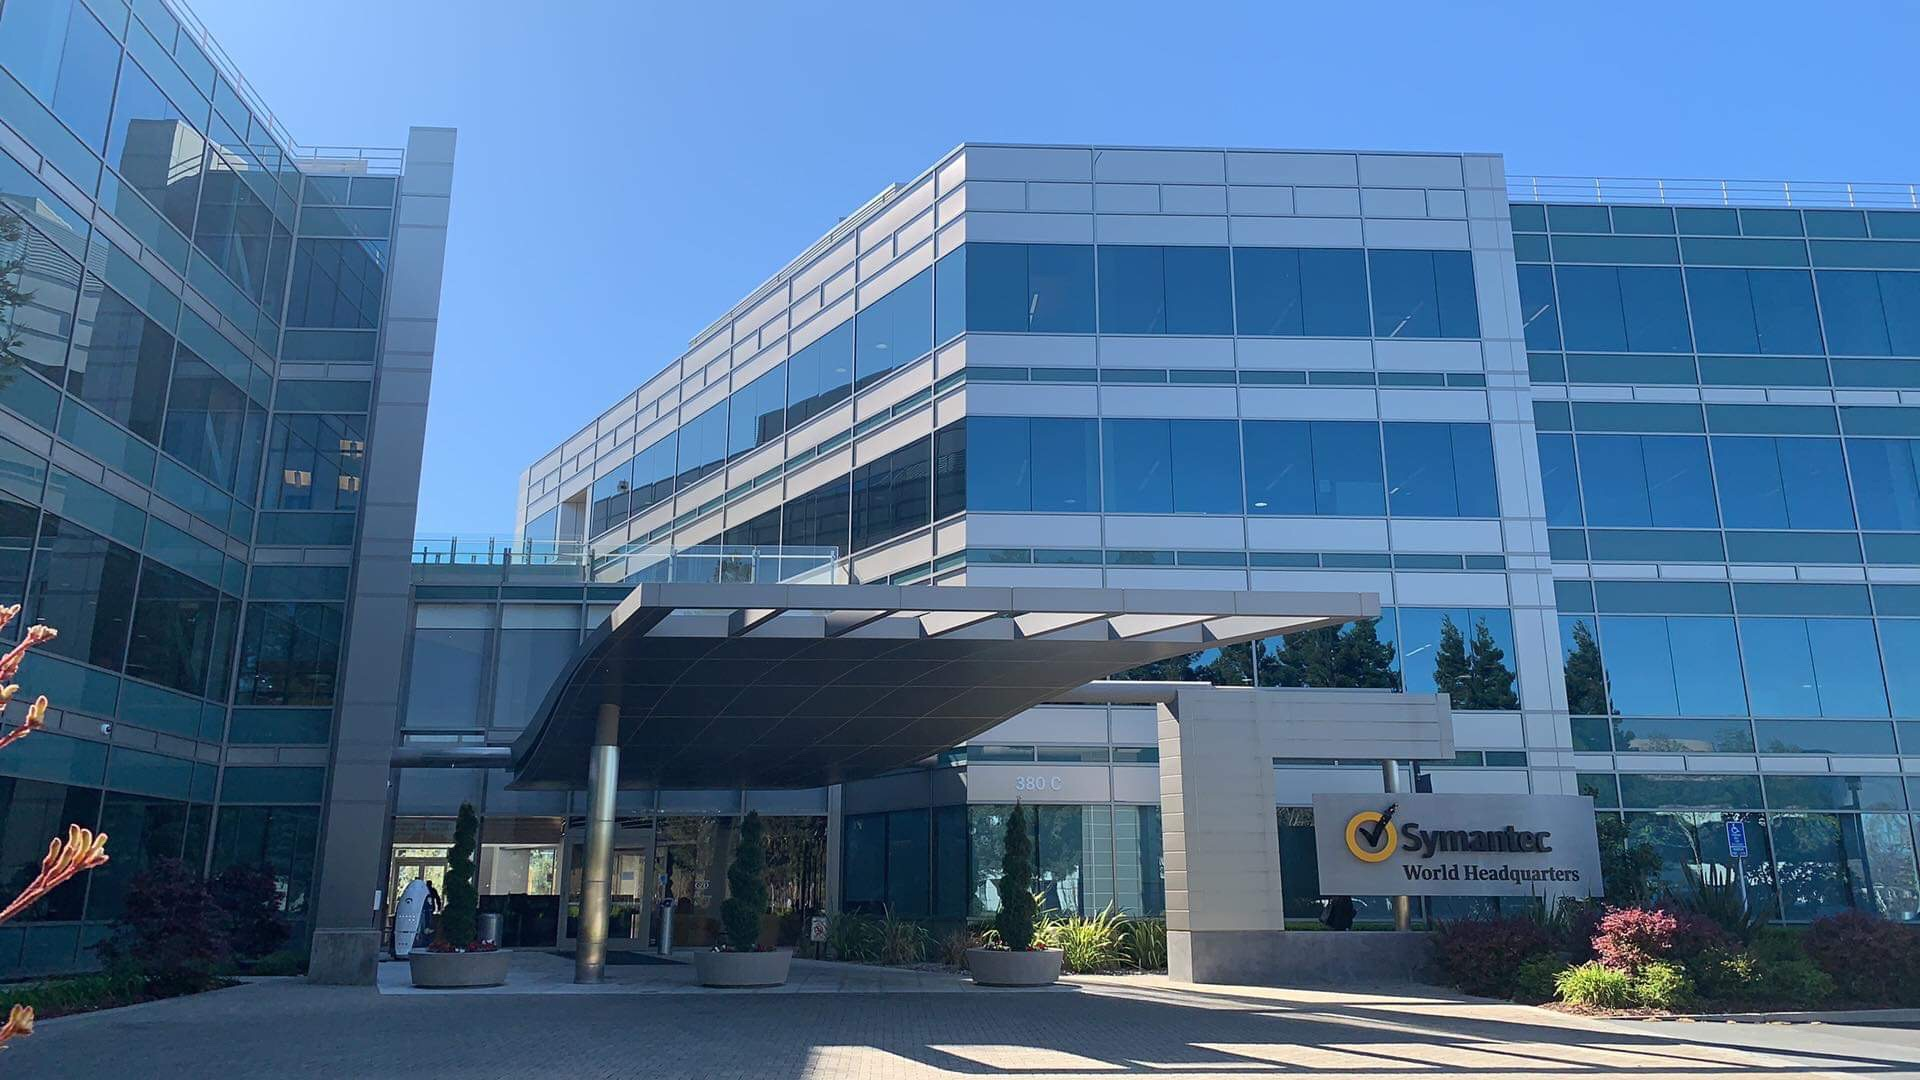 Symantec built the Experience Center to share their strong brand story and educate visitors on security risks and the next generation of cybersecurity solutions.